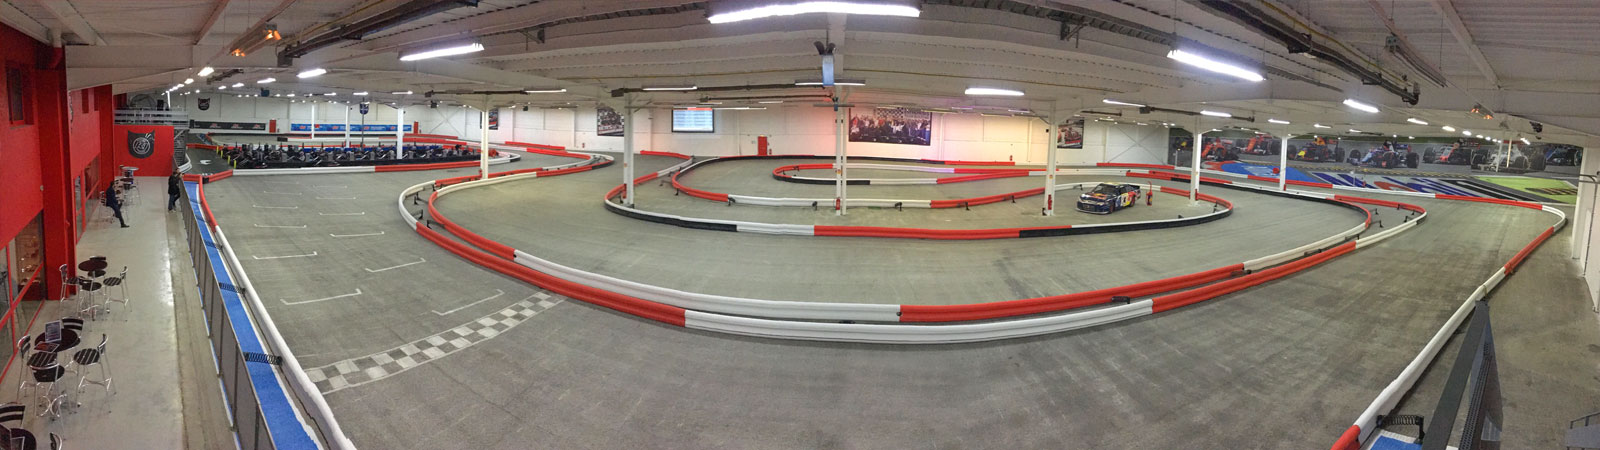 Lyon Location indoor kart racing